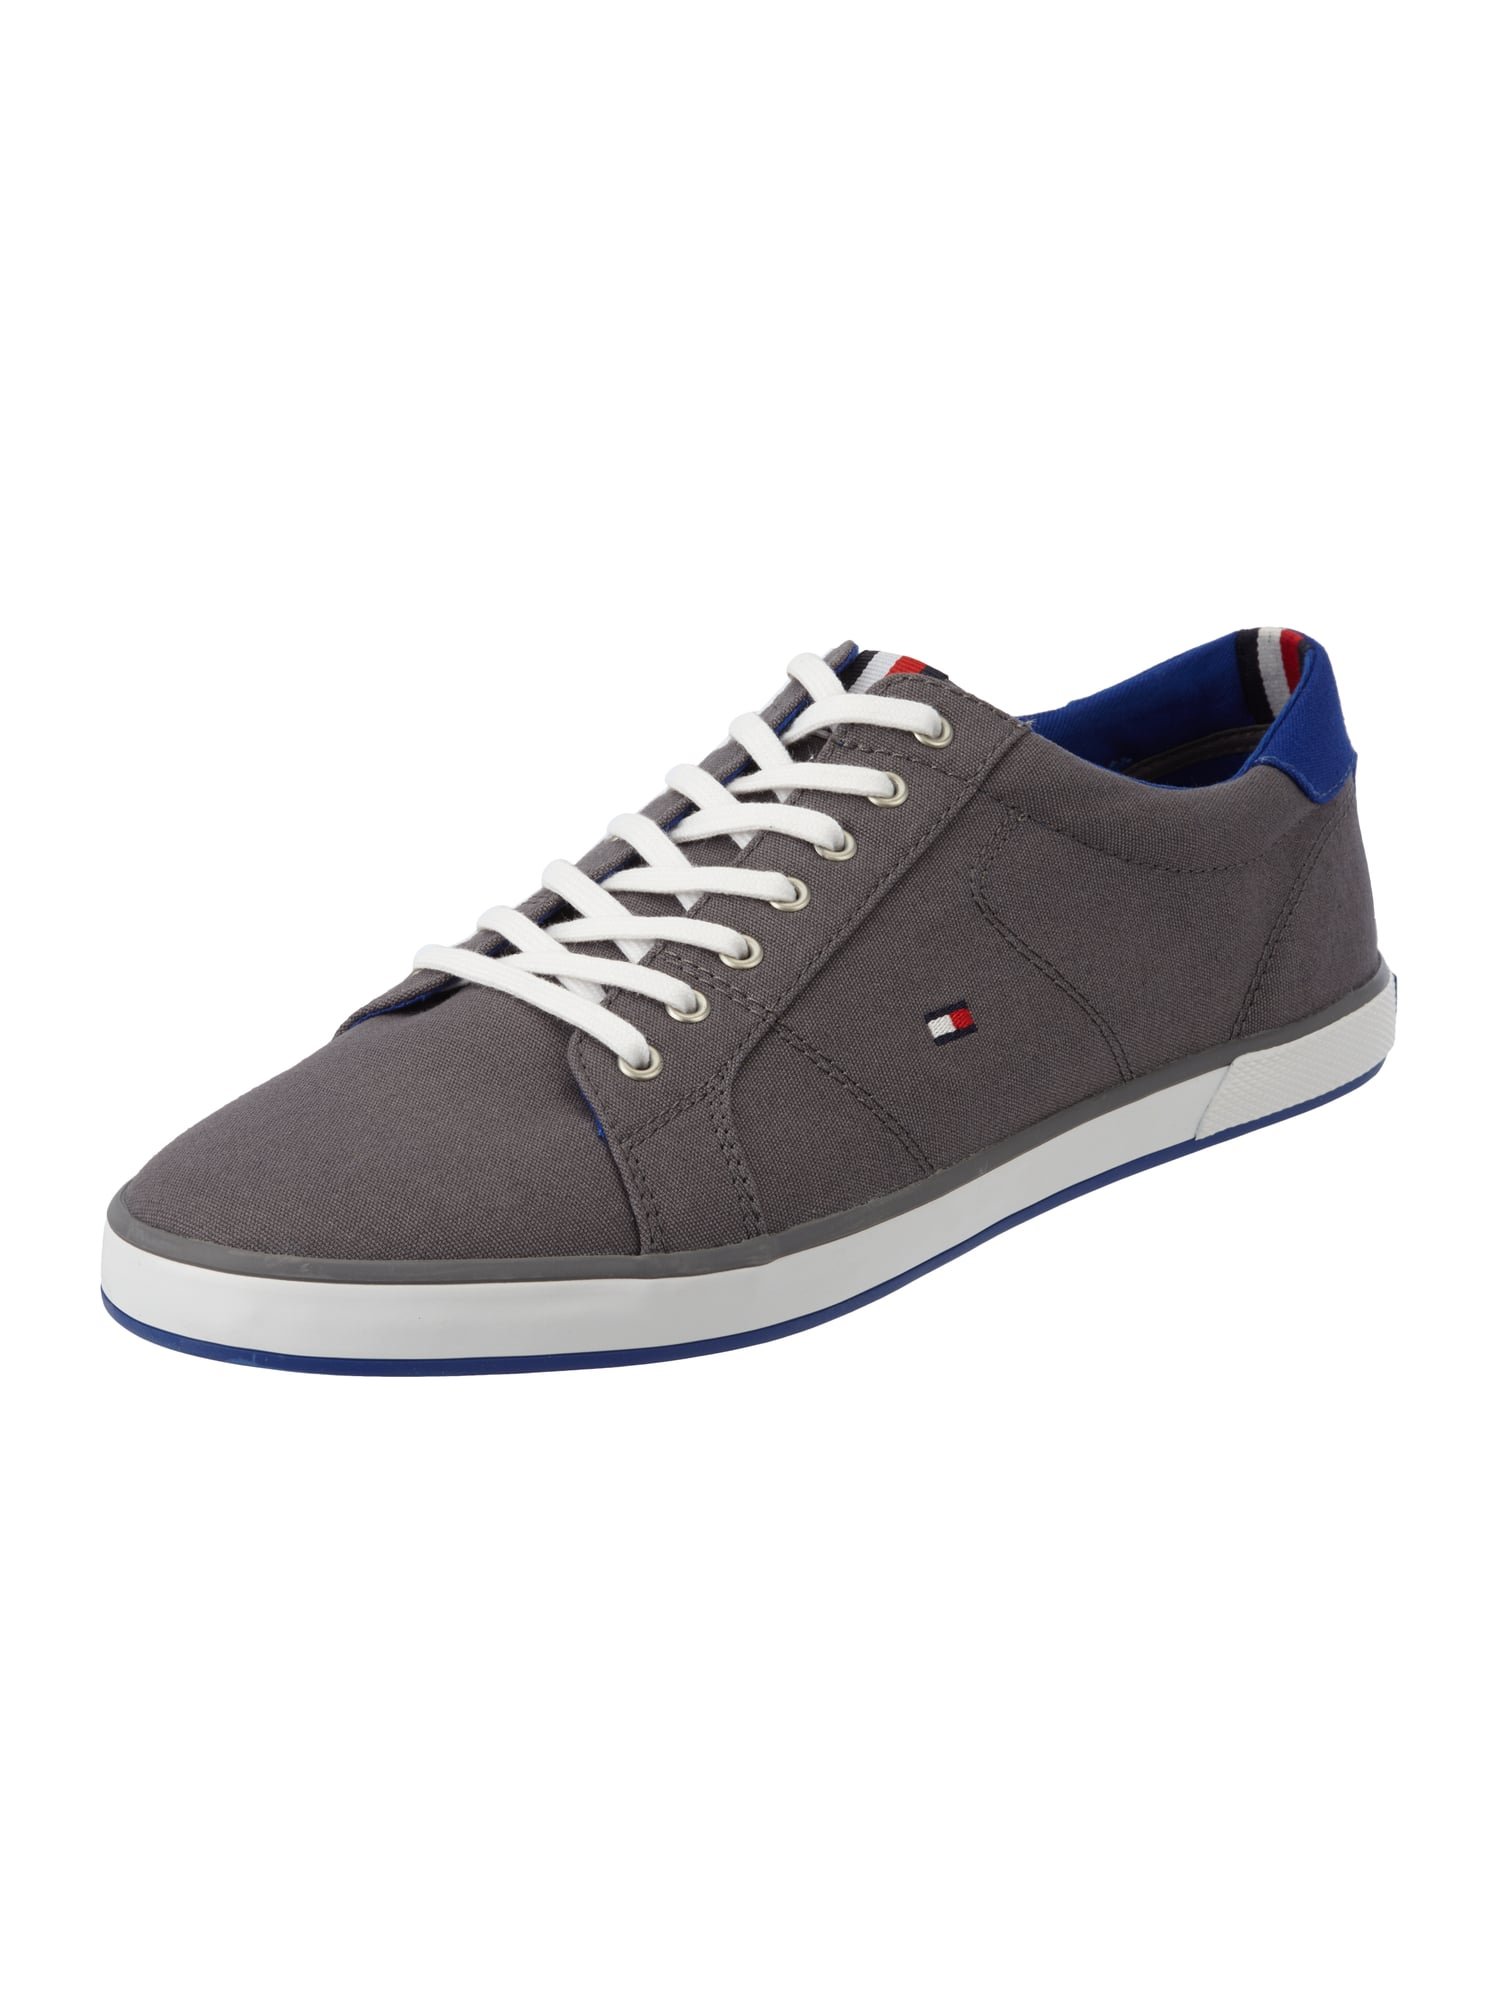 tommy hilfiger sneaker aus canvas in grau schwarz online. Black Bedroom Furniture Sets. Home Design Ideas